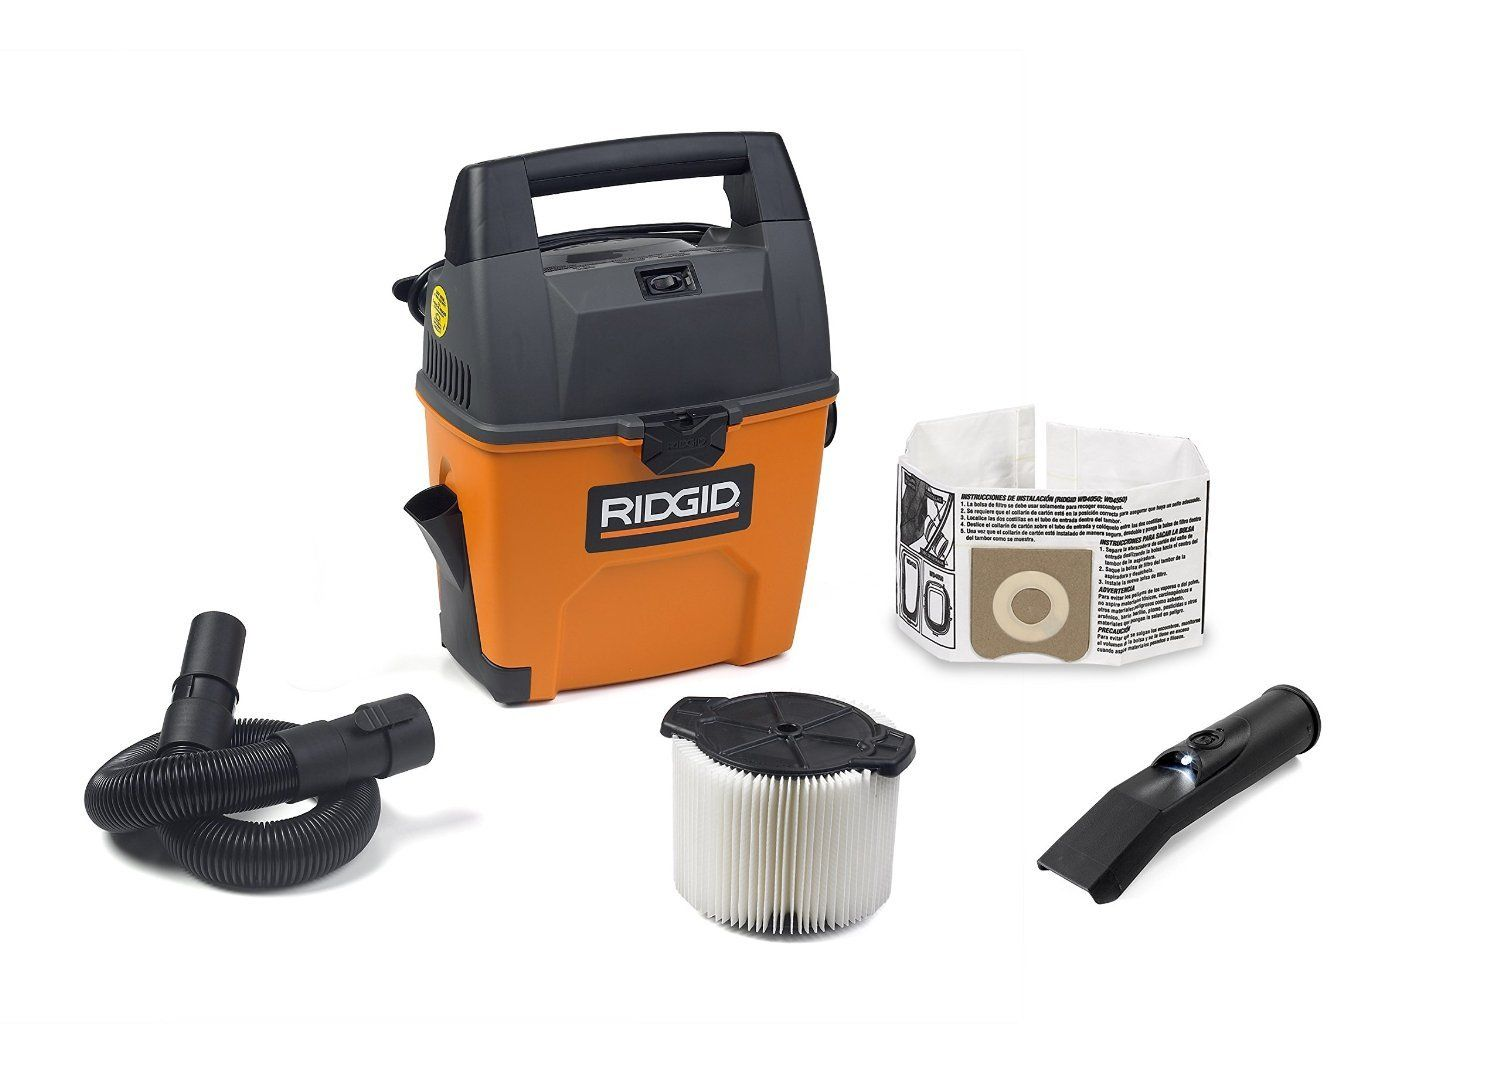 RIDGID Wet Dry Vacuums VAC3000 Portable Wet Dry Vacuum Cleaner for Car, Garage or In-Home Use, 3-Gallon, 3.5 Peak Horsepower Wet Dry Auto Vacuum Cleaner for Car. Wet dry auto vacuum cleaner for car can be stored easily and its lightweight design can be used as a portable wet dry vacuum cleaner for car. Convenient storage in the car, garage or in the home. Built-in suction dustpan on this car vacuum cleaner makes quickly cleaning up small messes easy, making it the perfect wet dry auto…